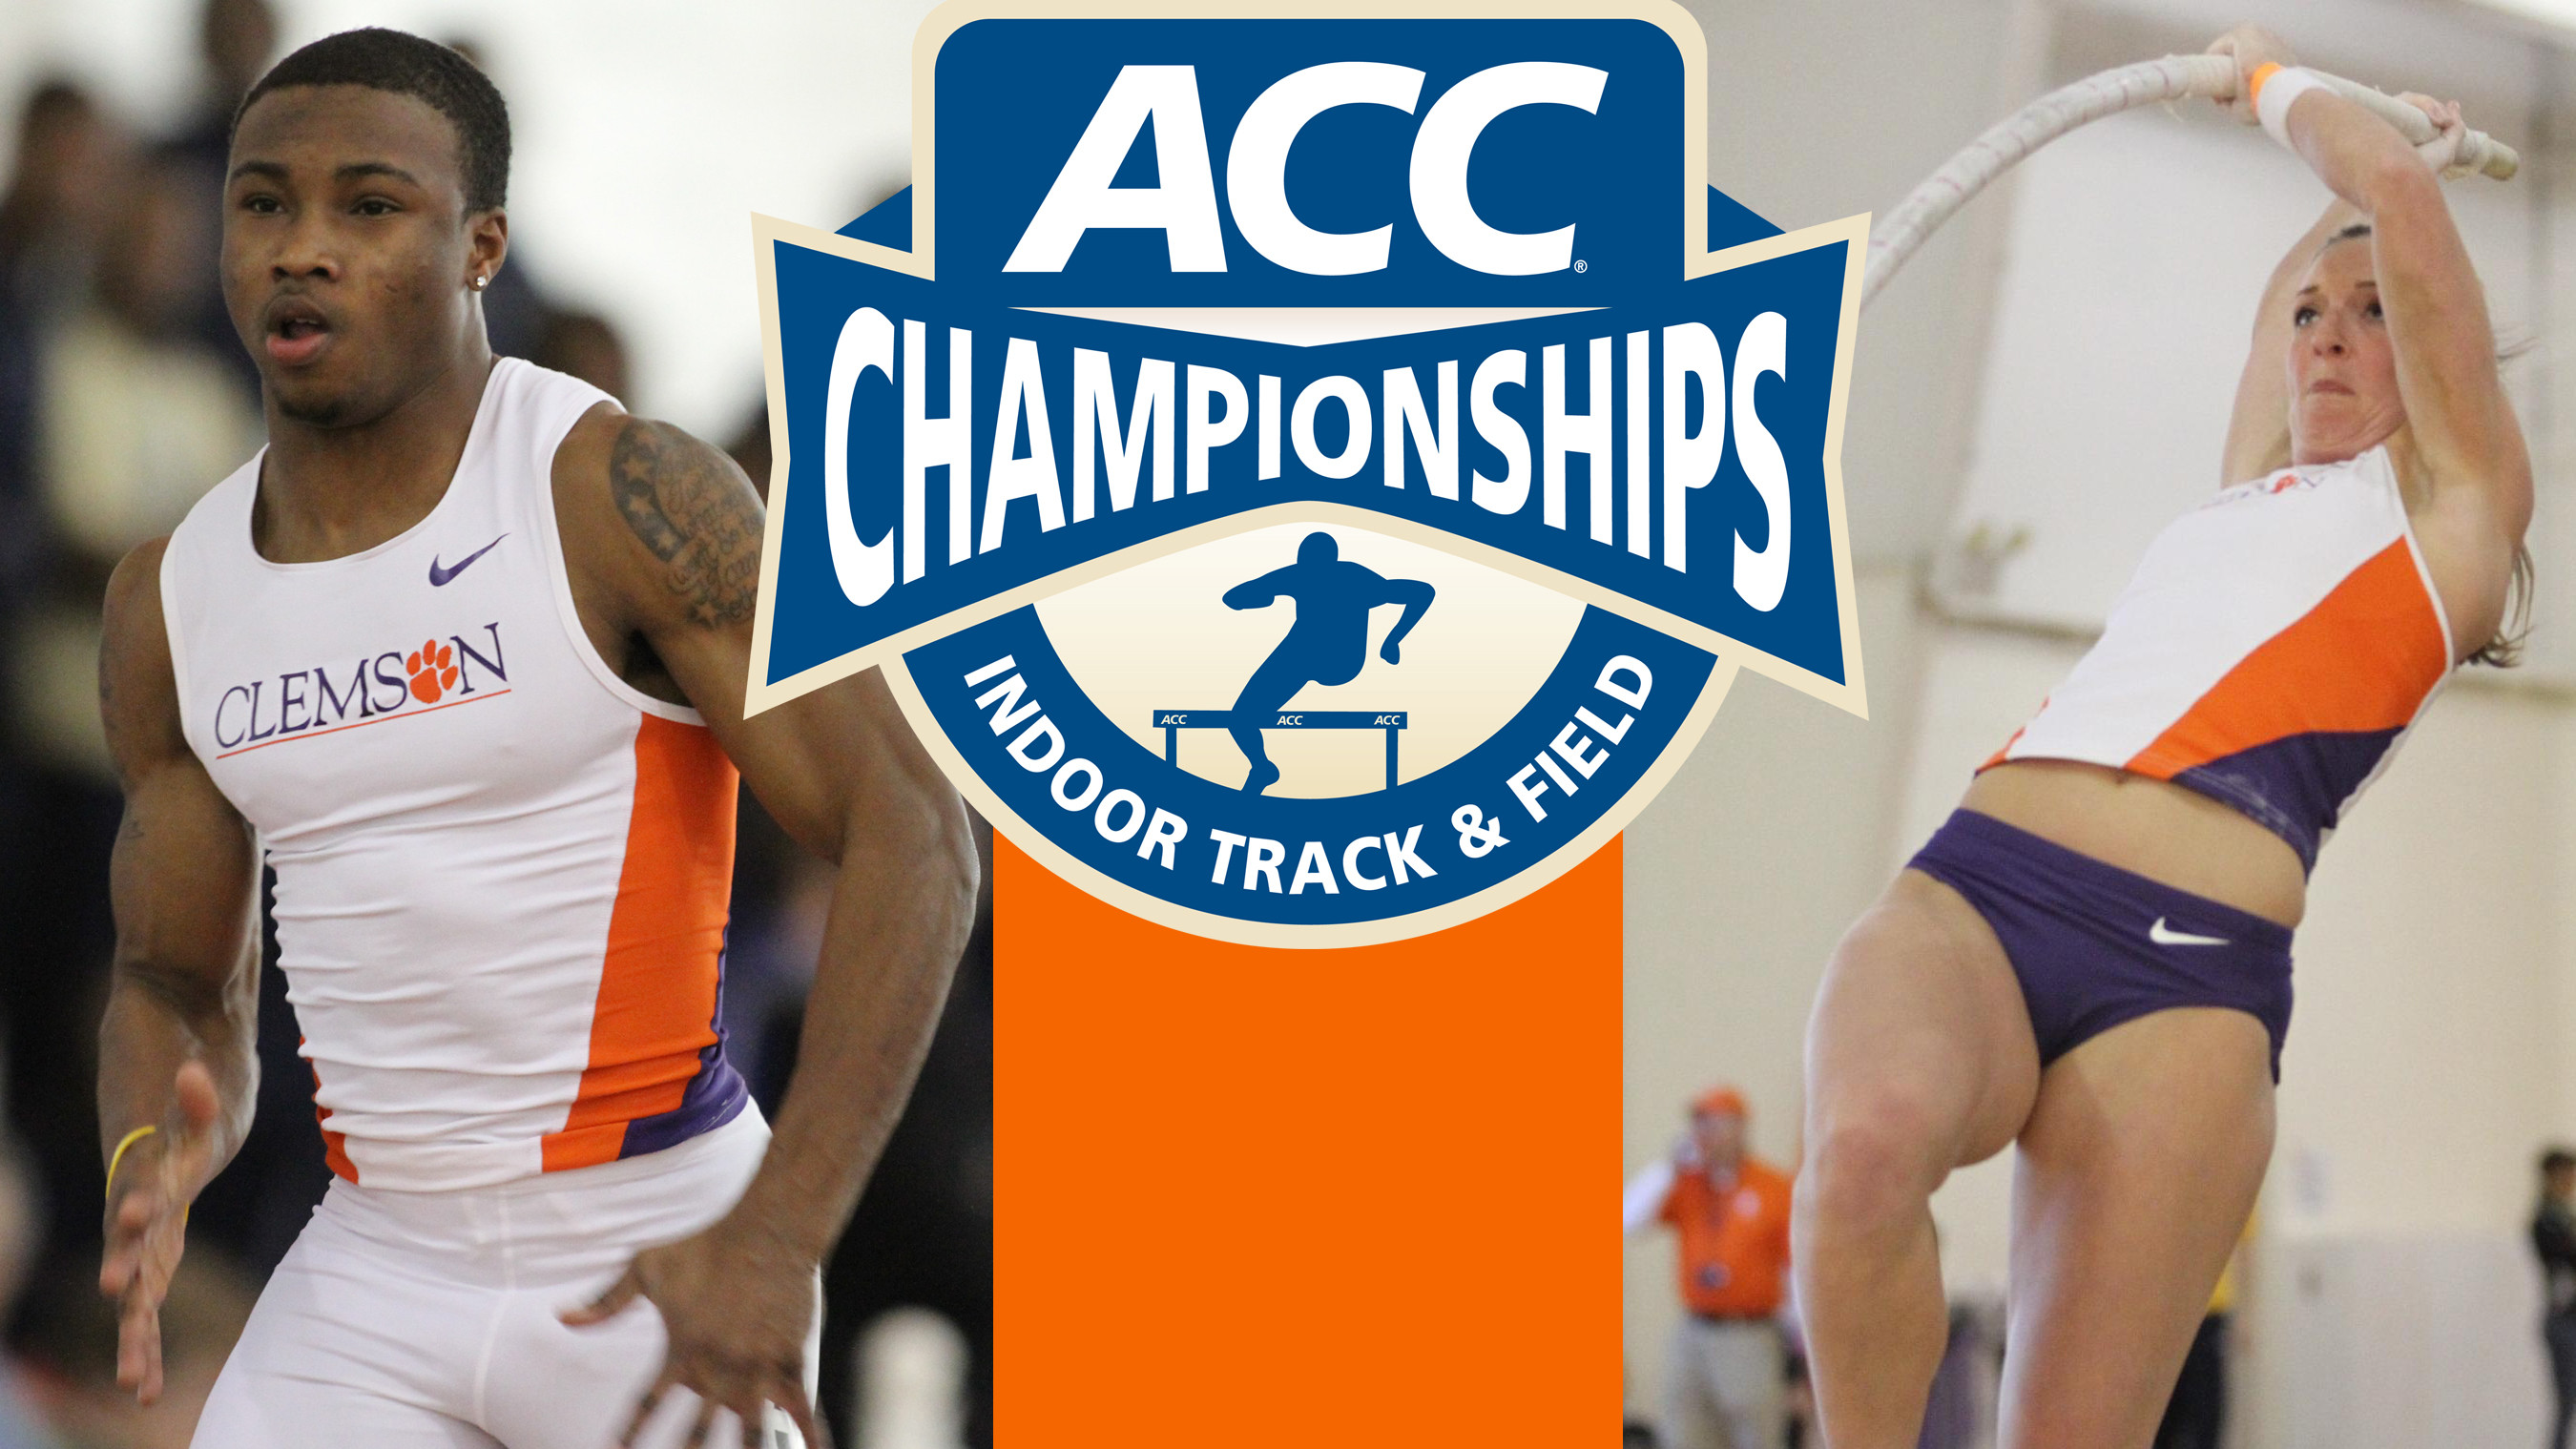 Clemson to Host ACC Indoor Track & Field Championships